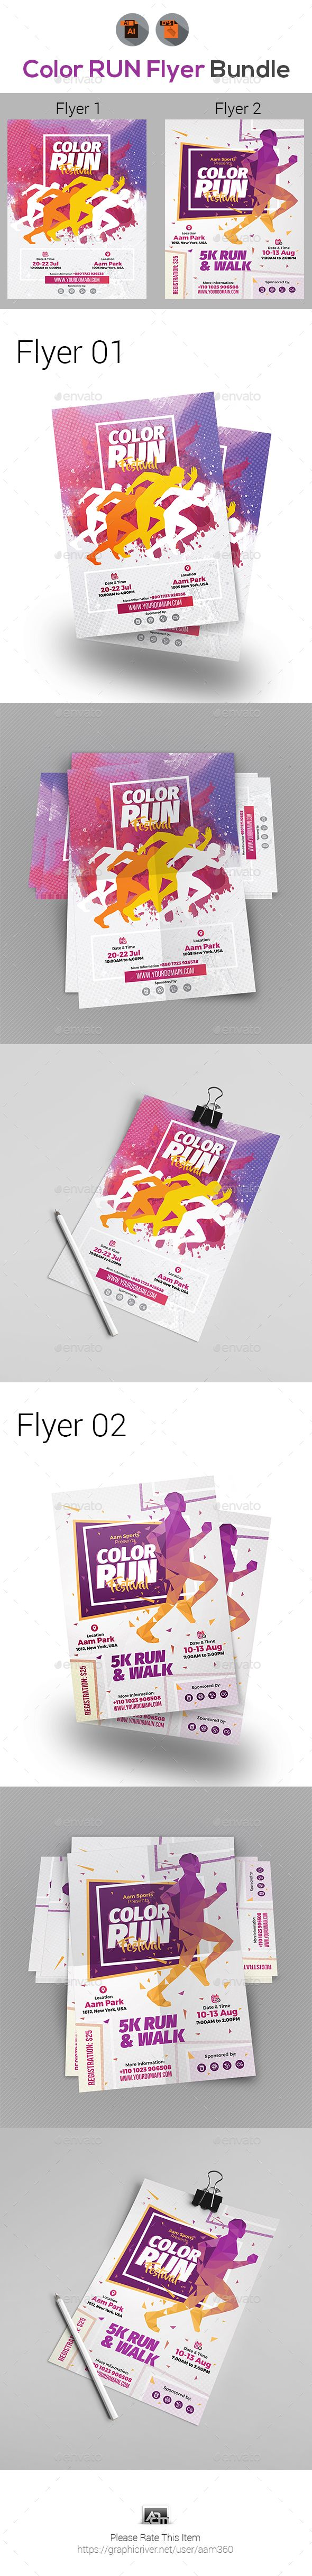 Color Run Festival Flyers Bundle - Templates Vector EPS, AI Illustrator